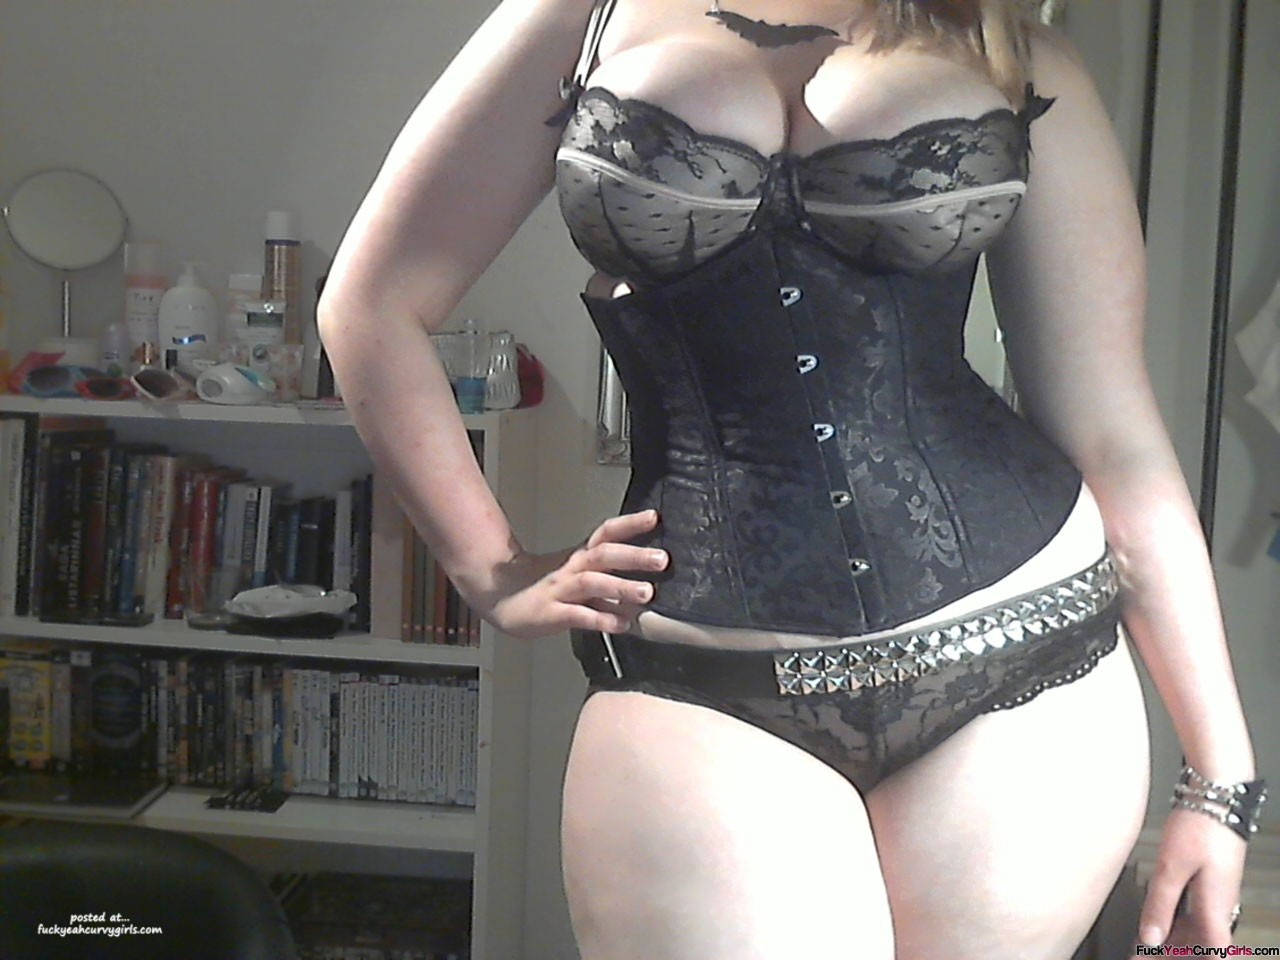 Delicious Curvy Girl In A Corset - Fuck Yeah Curvy Girls